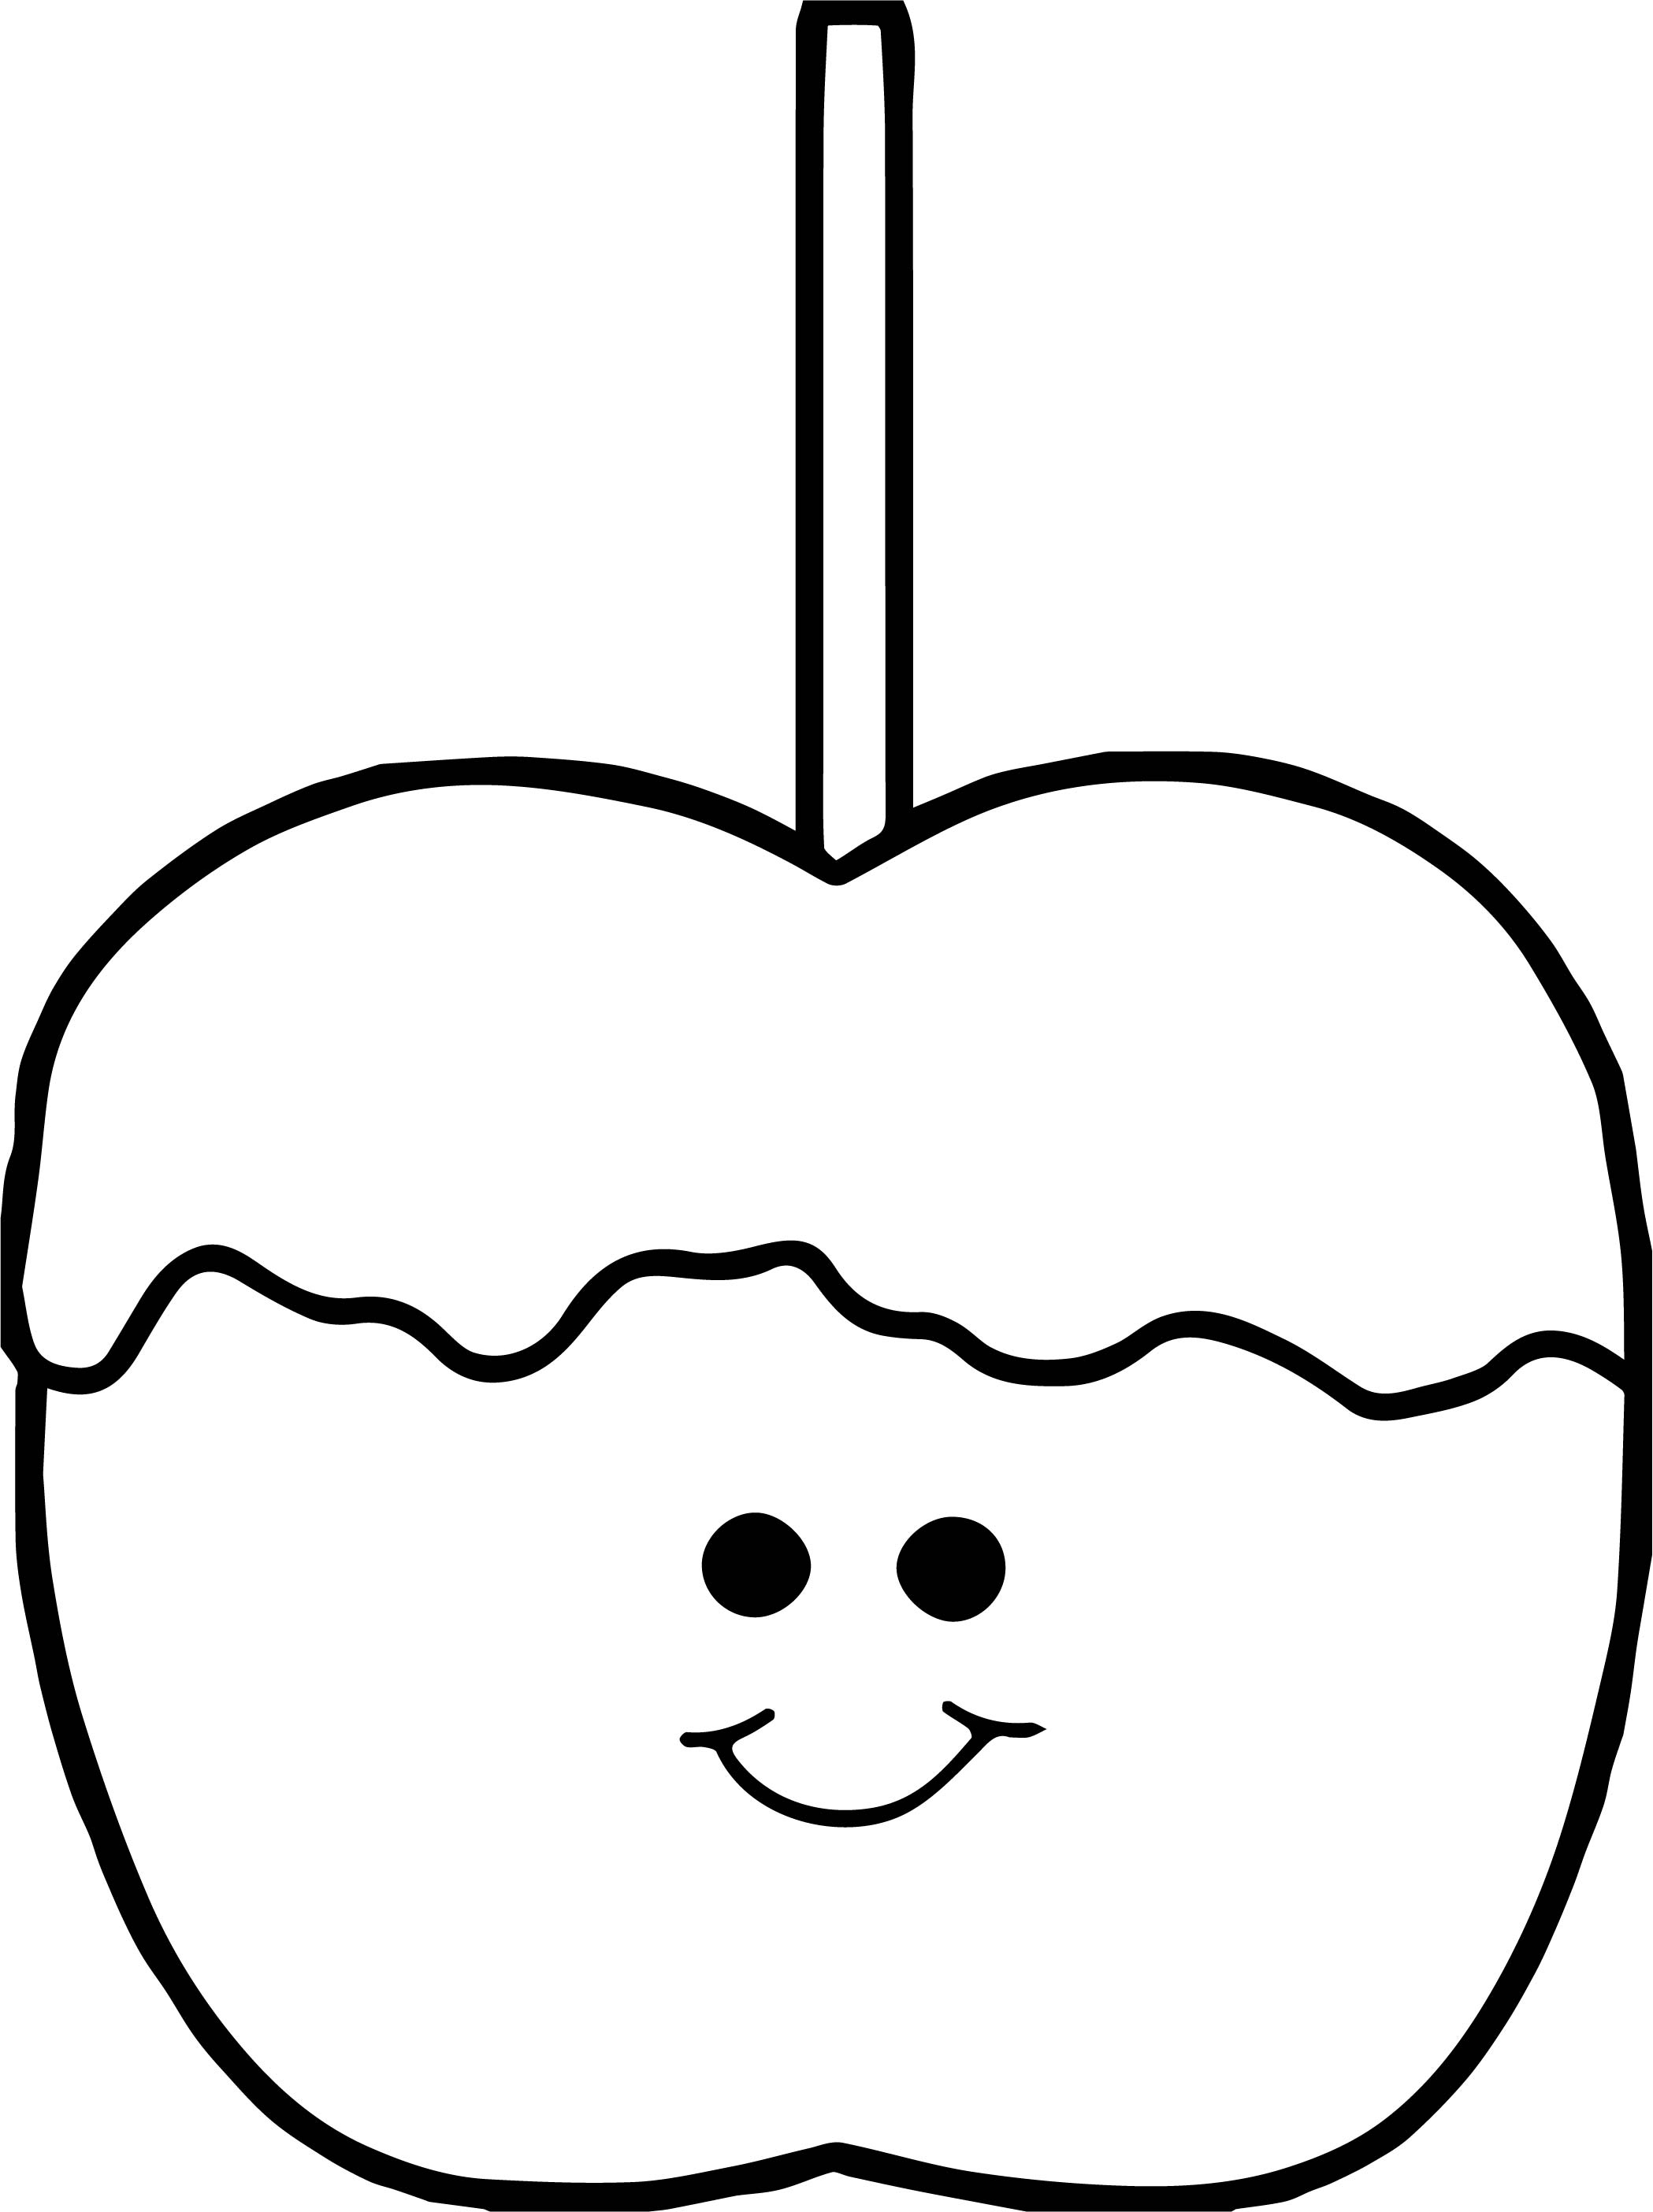 Cute Caramel Apple Coloring Page | Wecoloringpage